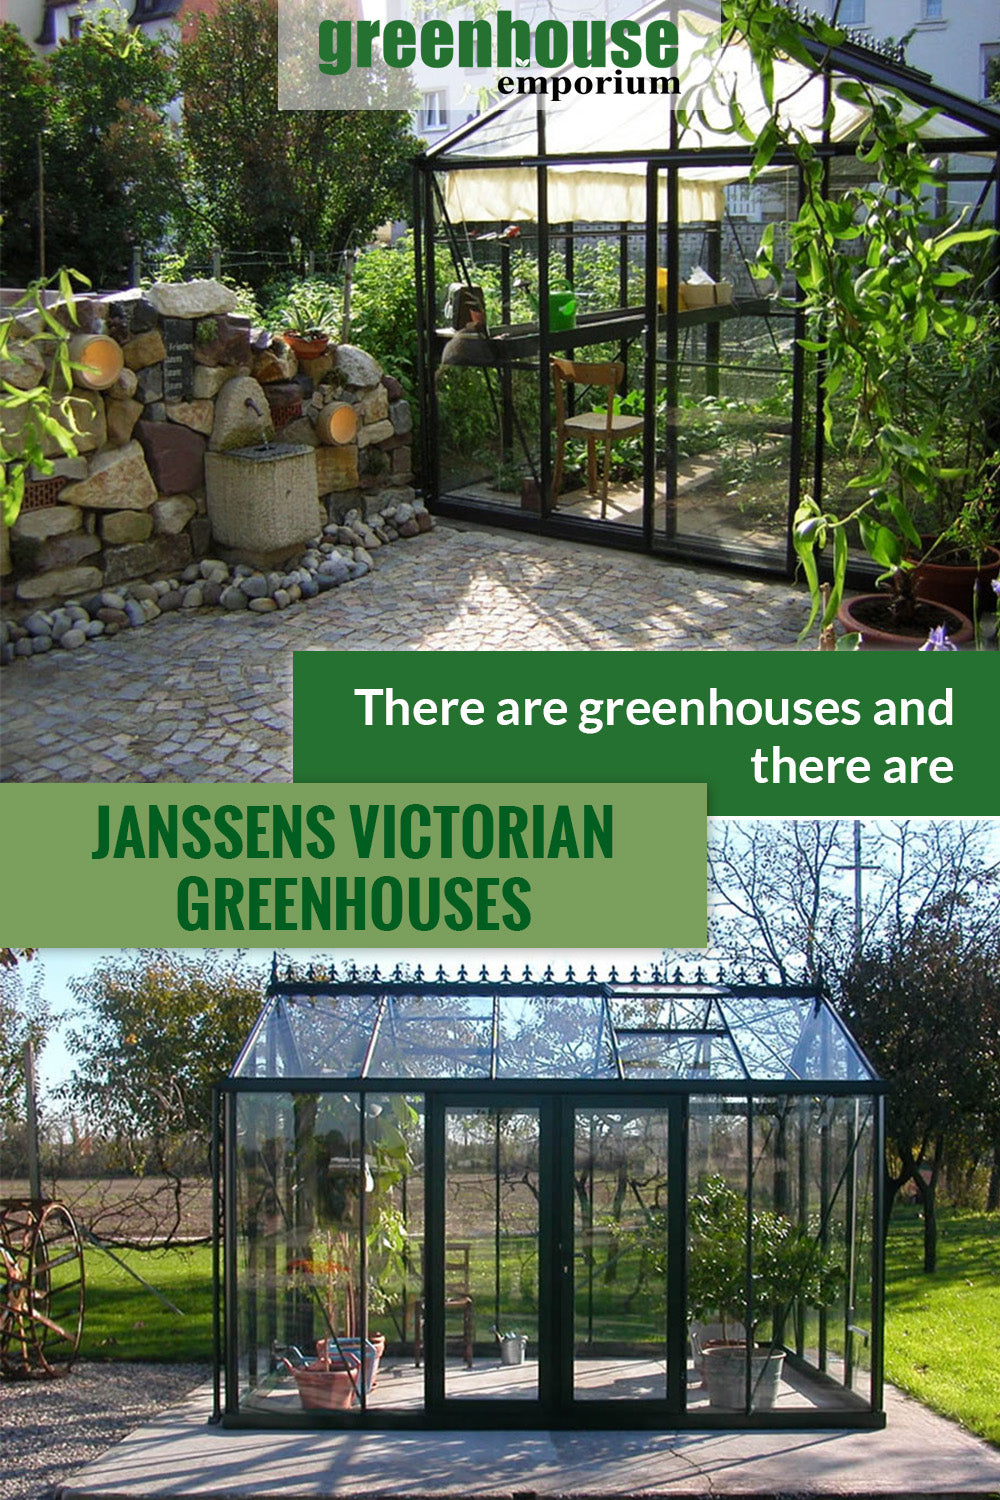 Janssens Greenhouse image above shows the front view with plants and shade cloths inside. Below shows the whole greenhouse with plants inside. The text says There are greenhouses and there are Janssens Victorian Greenhouses